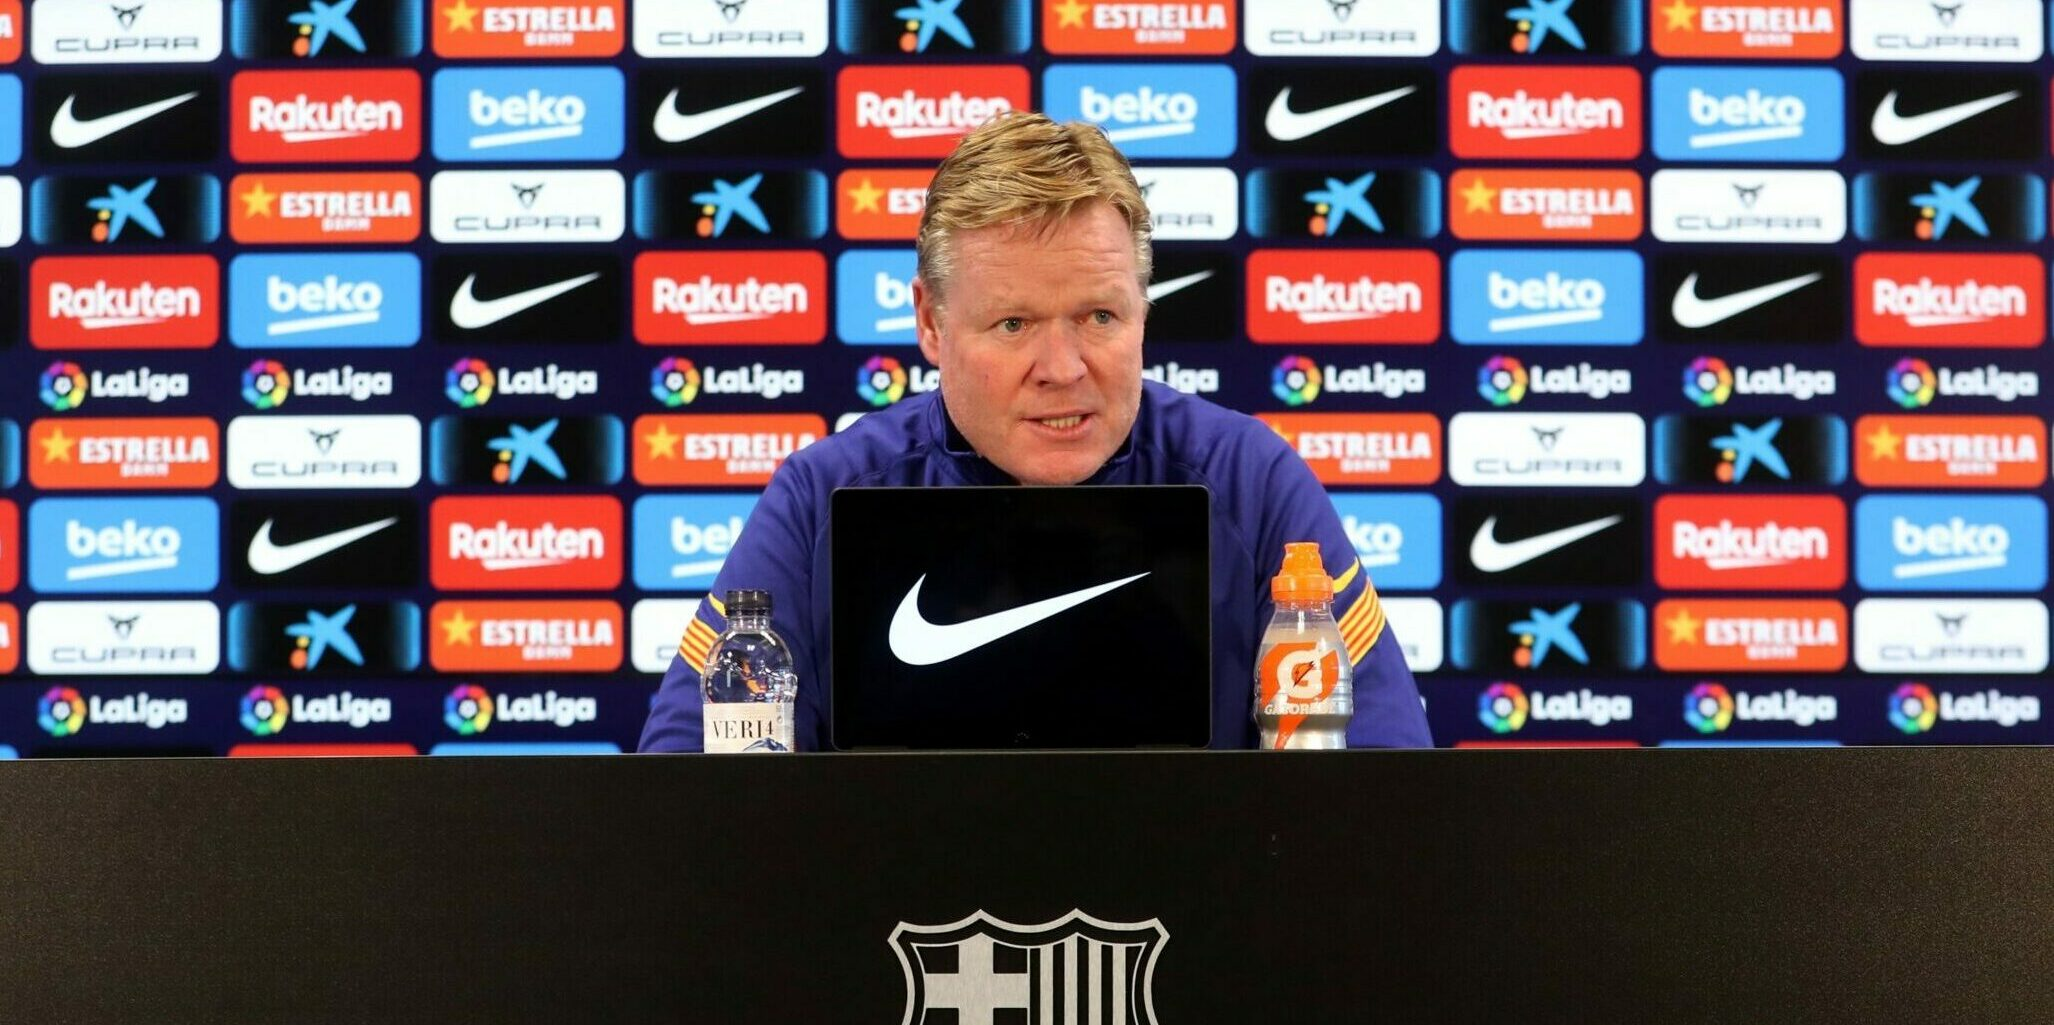 Ronald Koeman, en roda de premsa | Europa Press